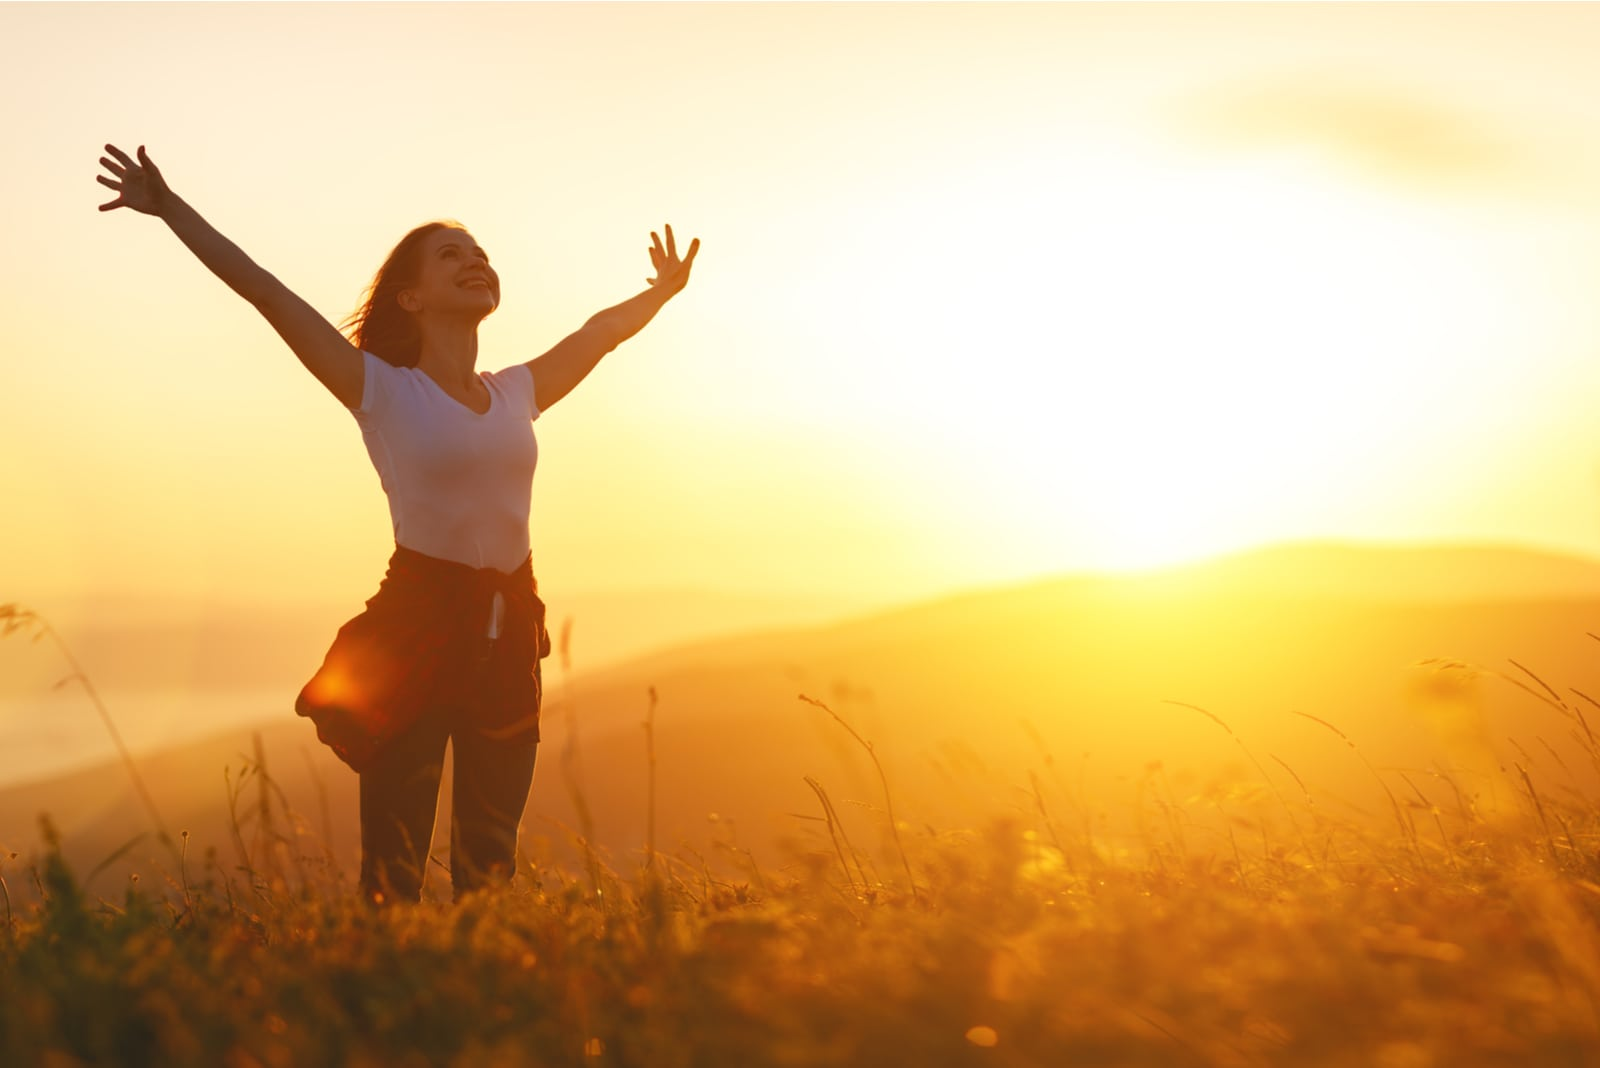 the woman stands in a field of outstretched arms